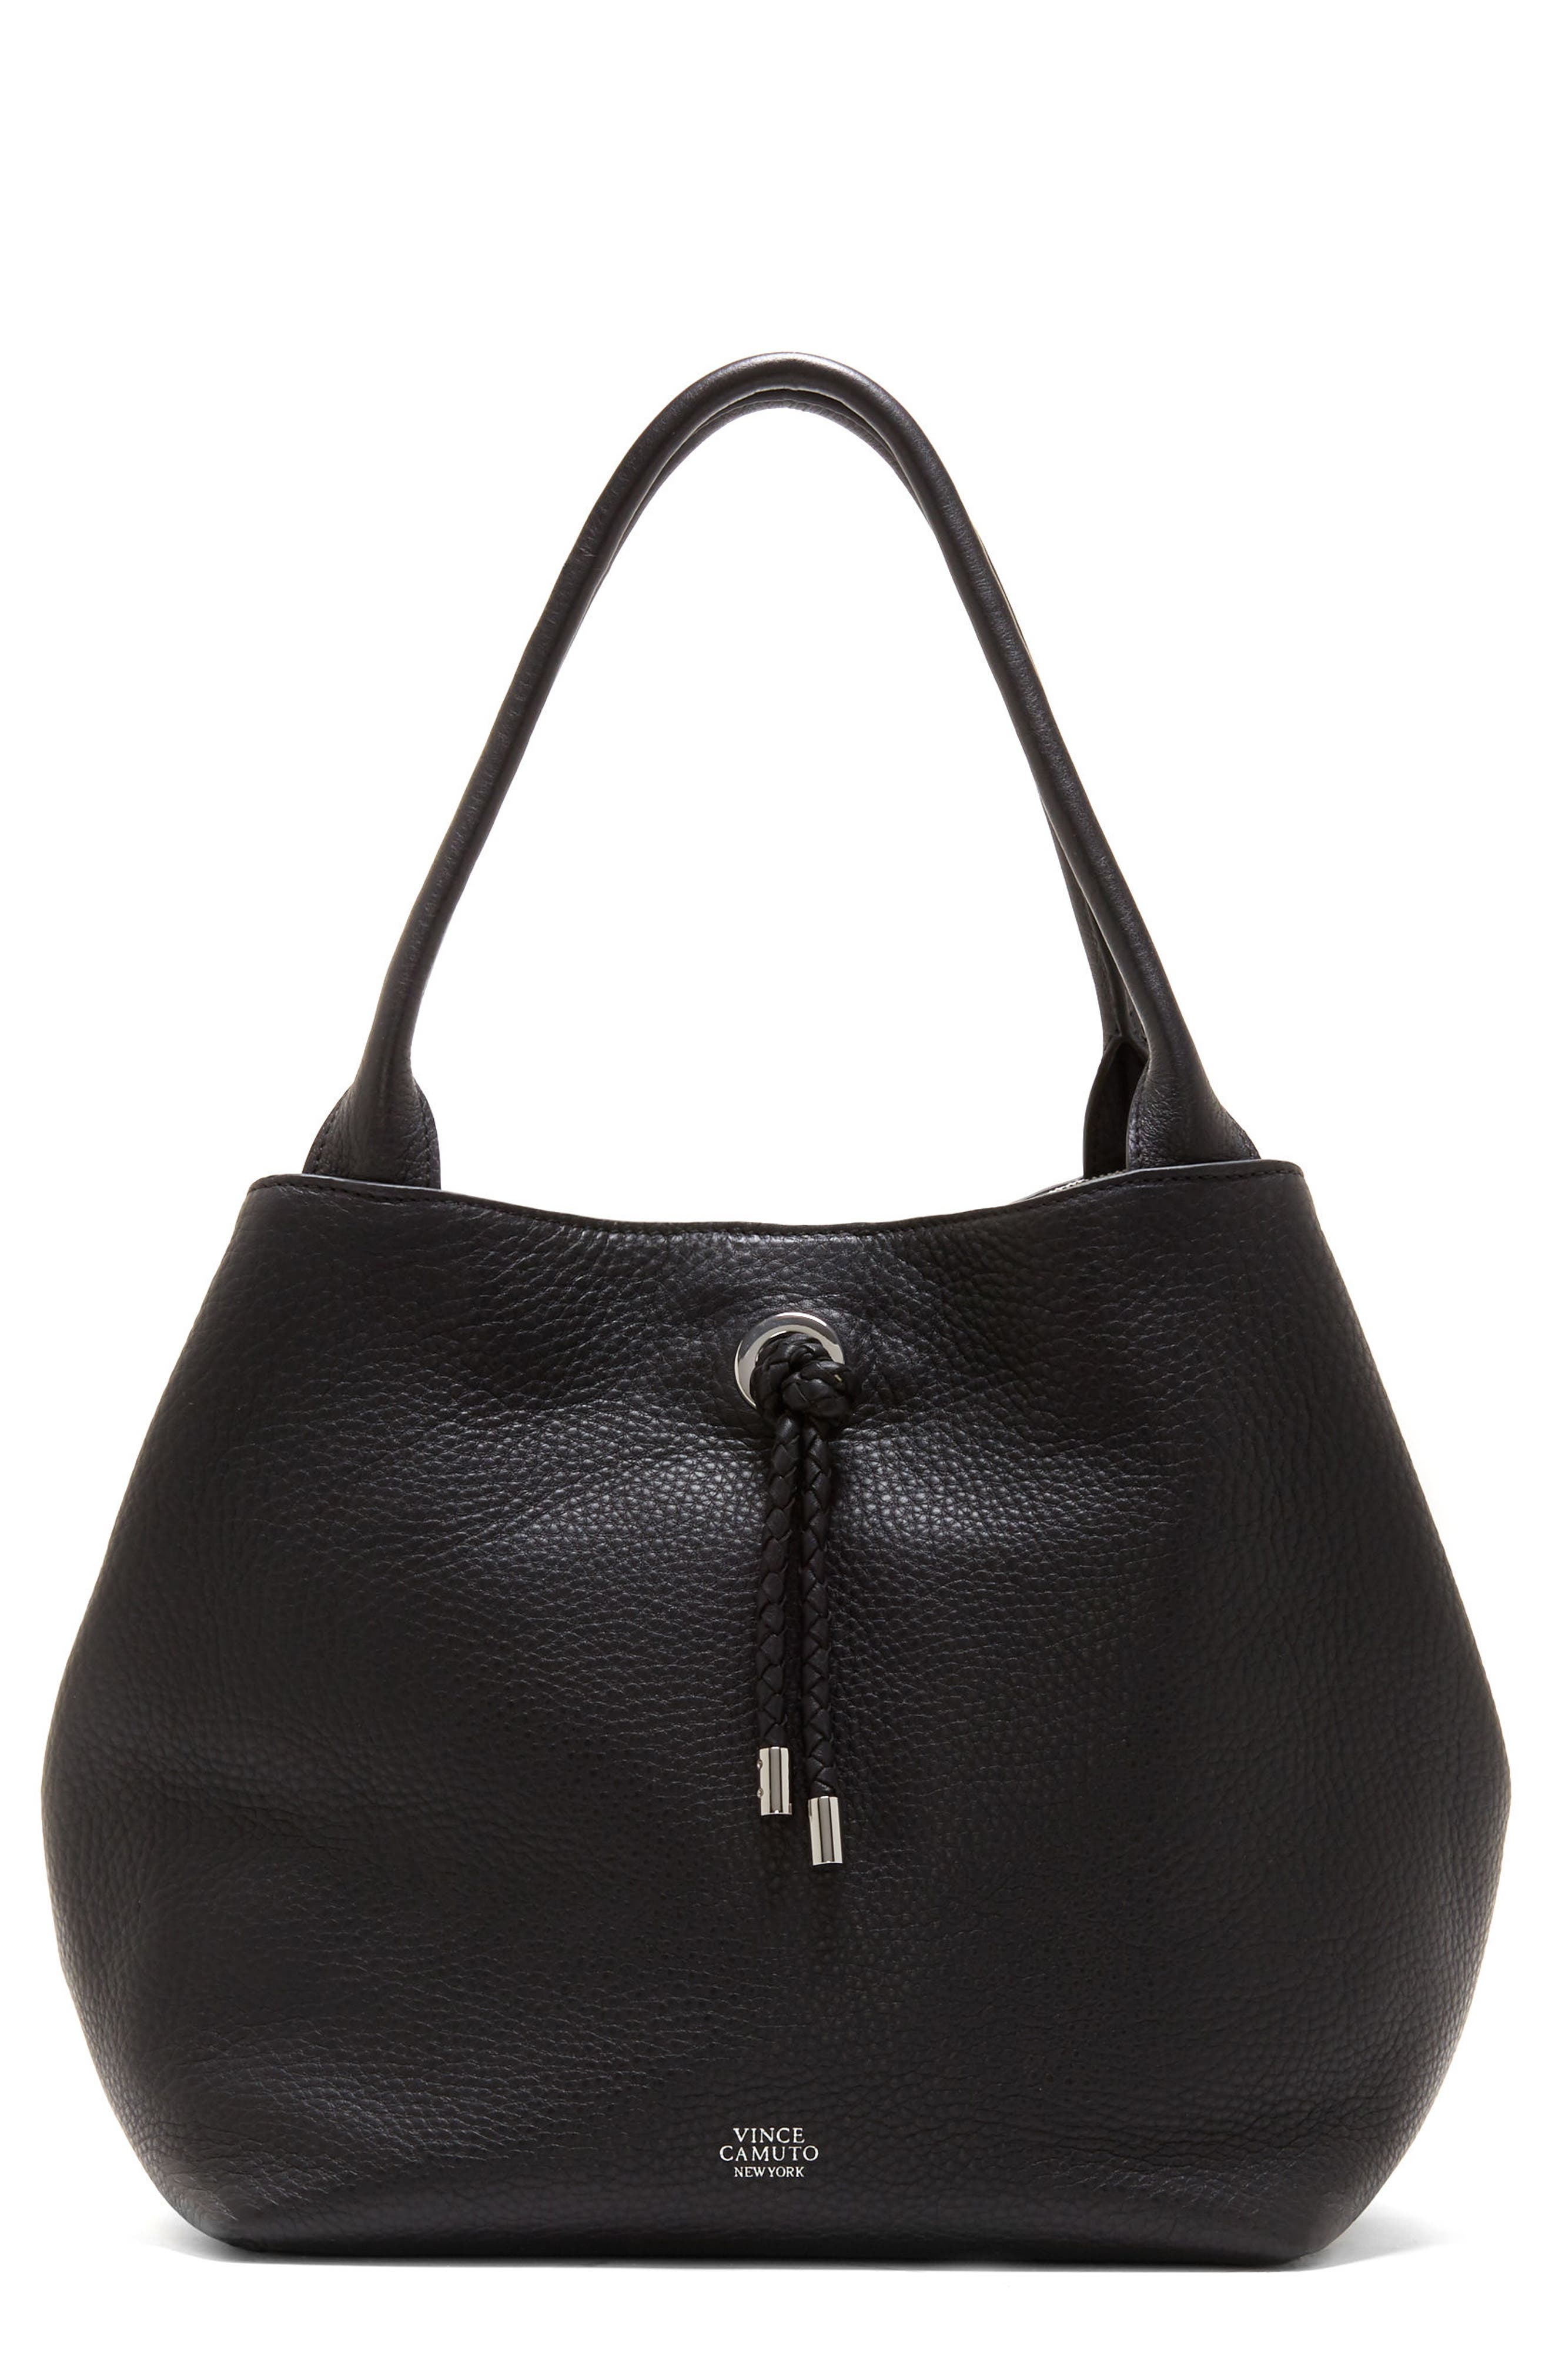 Vince Camuto Small Aviva Leather Tote